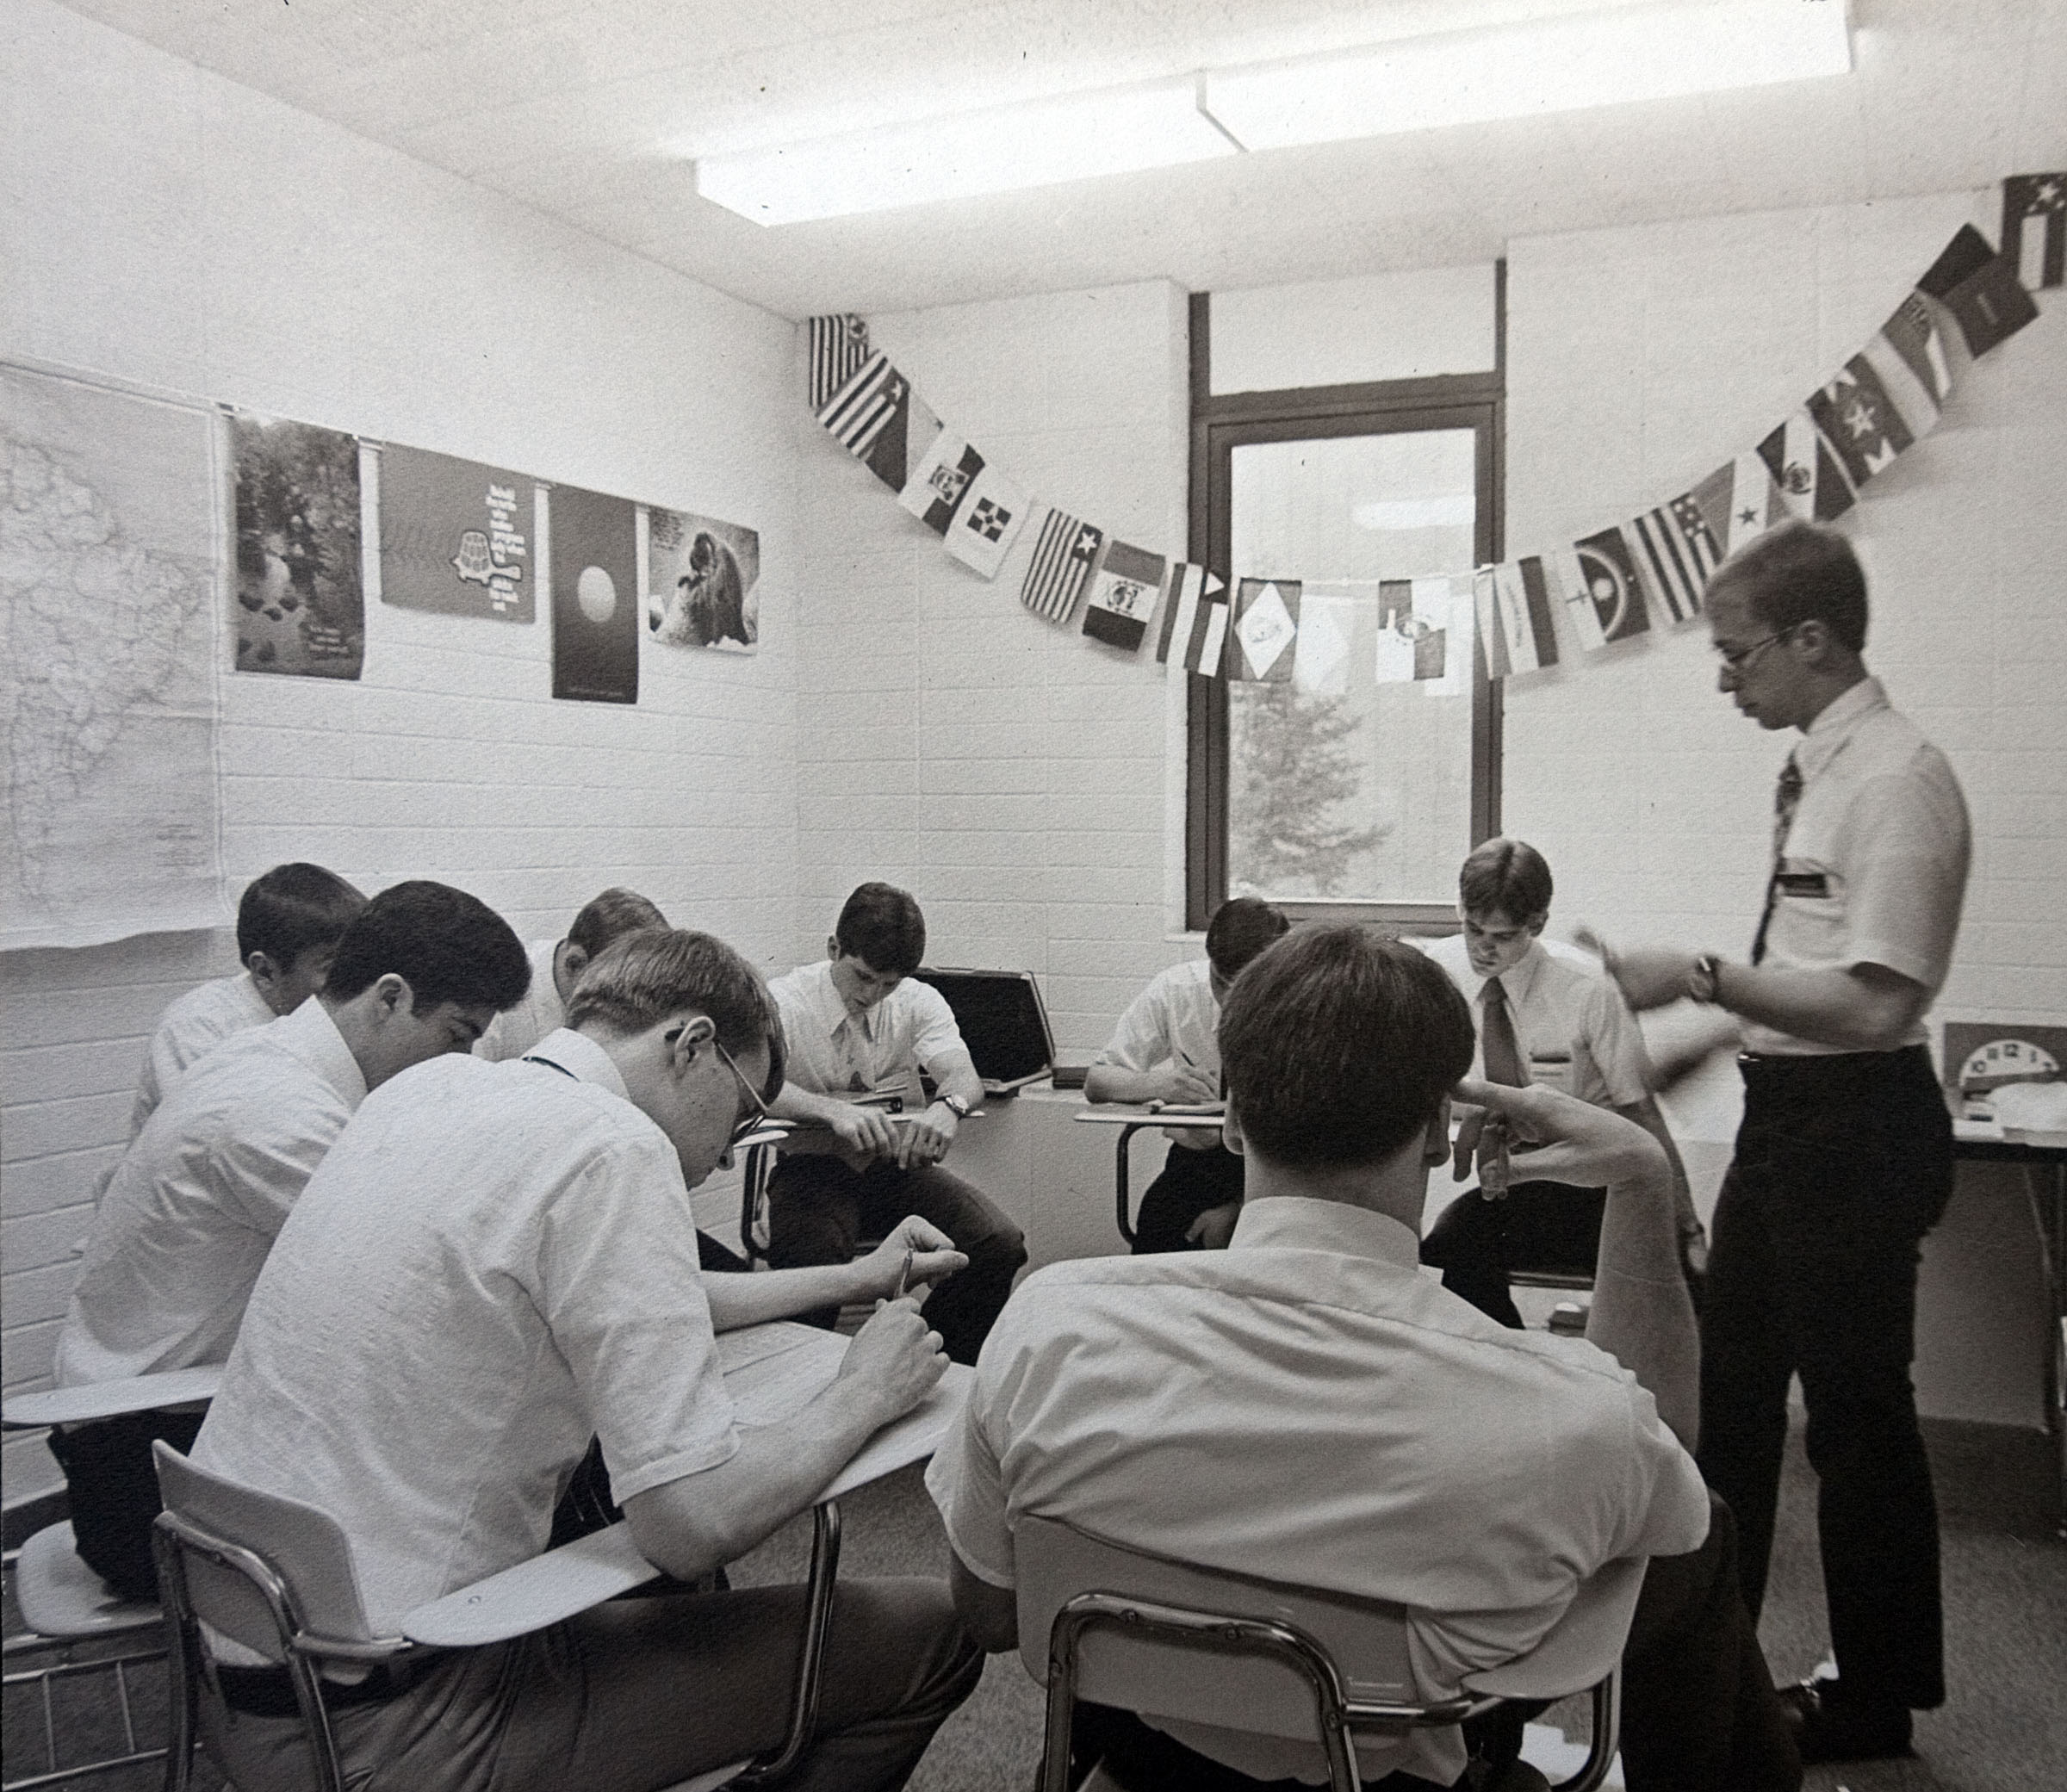 """Missionaries spend many classroom hours each day learning foreign language and missionary discussions, practicing teaching skills, studying scriptures, and developing deeper understanding of gospel doctrines and principles."" — This is the caption information found on the frame plaque accompany this photo, one nearly dozen historical photos showing the development of the Language Training Mission and Missionary Training Center facilities in Provo since the 1960s."